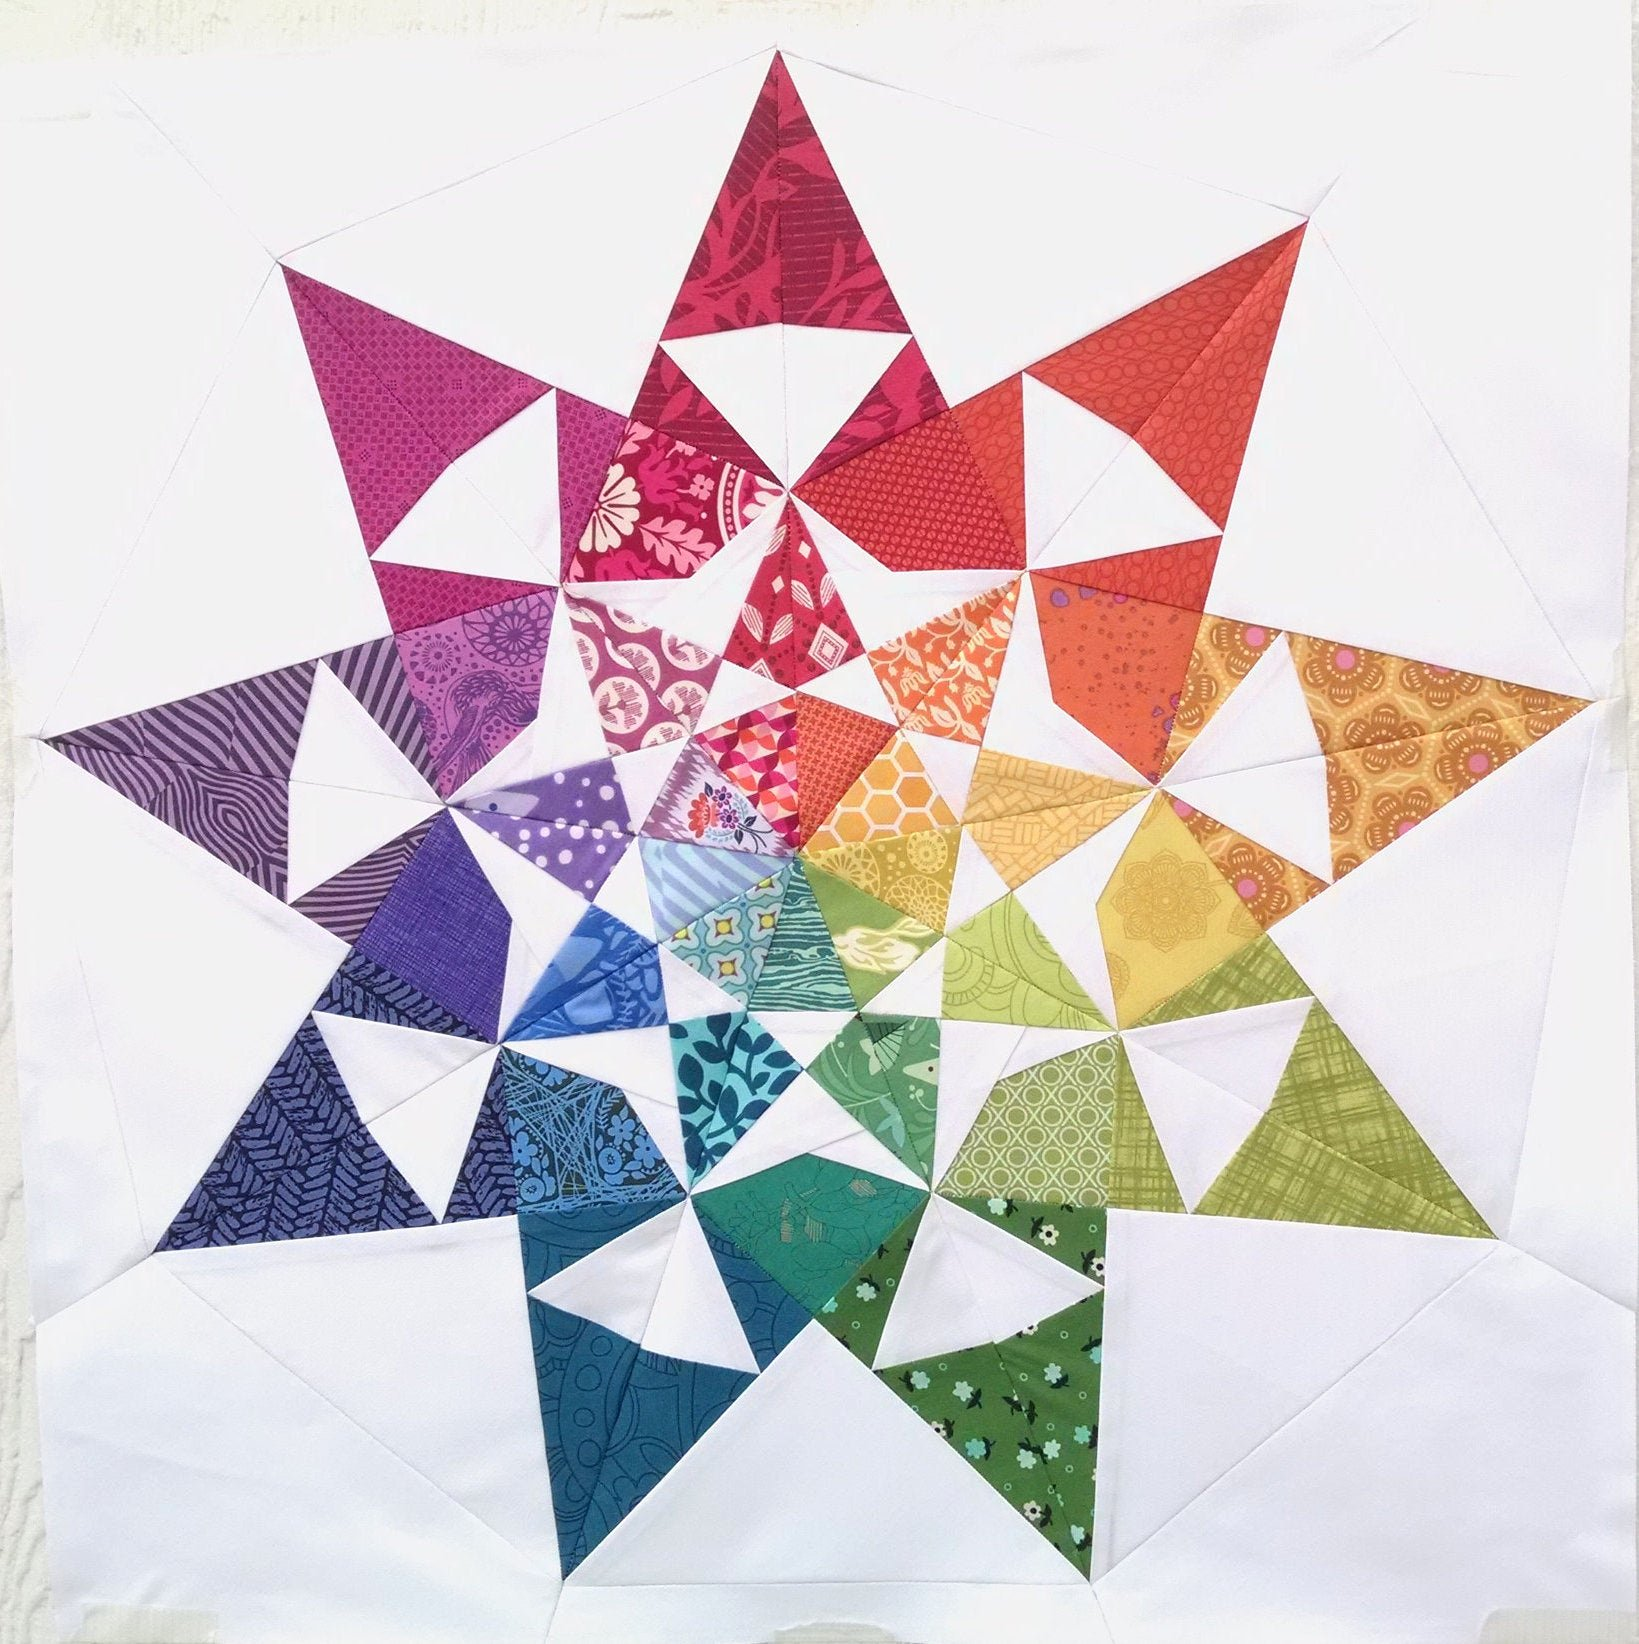 2 Inch Star Luxury 2 Sizes 18 Inch & 24 Inch Modern Star Quilt Pattern Dusk